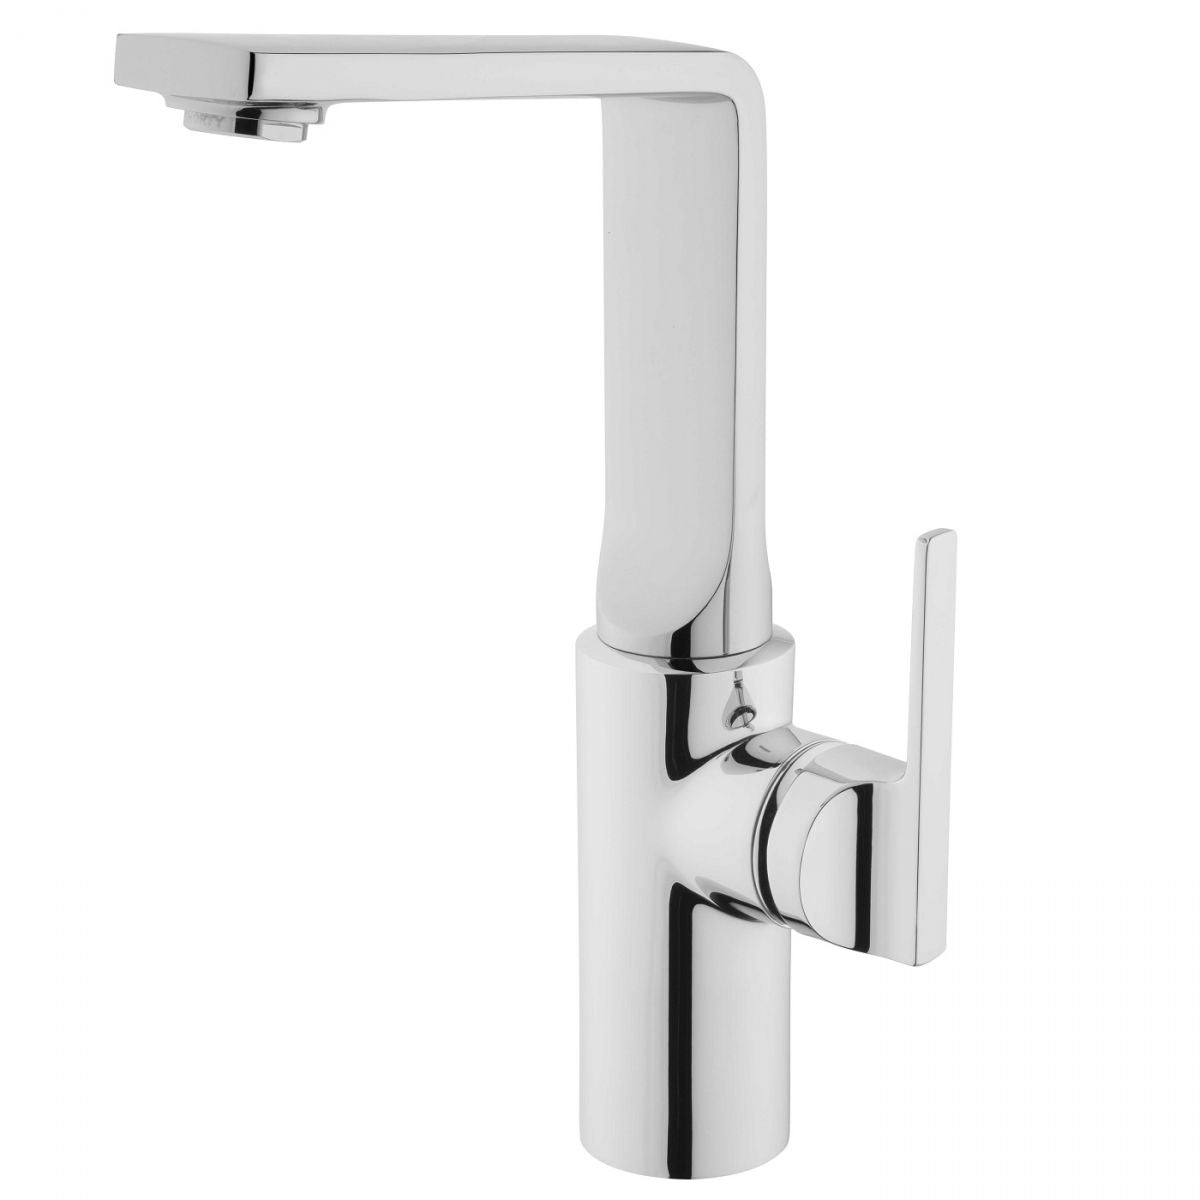 Suit L Tall Monobloc Basin Mixer - Blue Sky Bathrooms Ltd